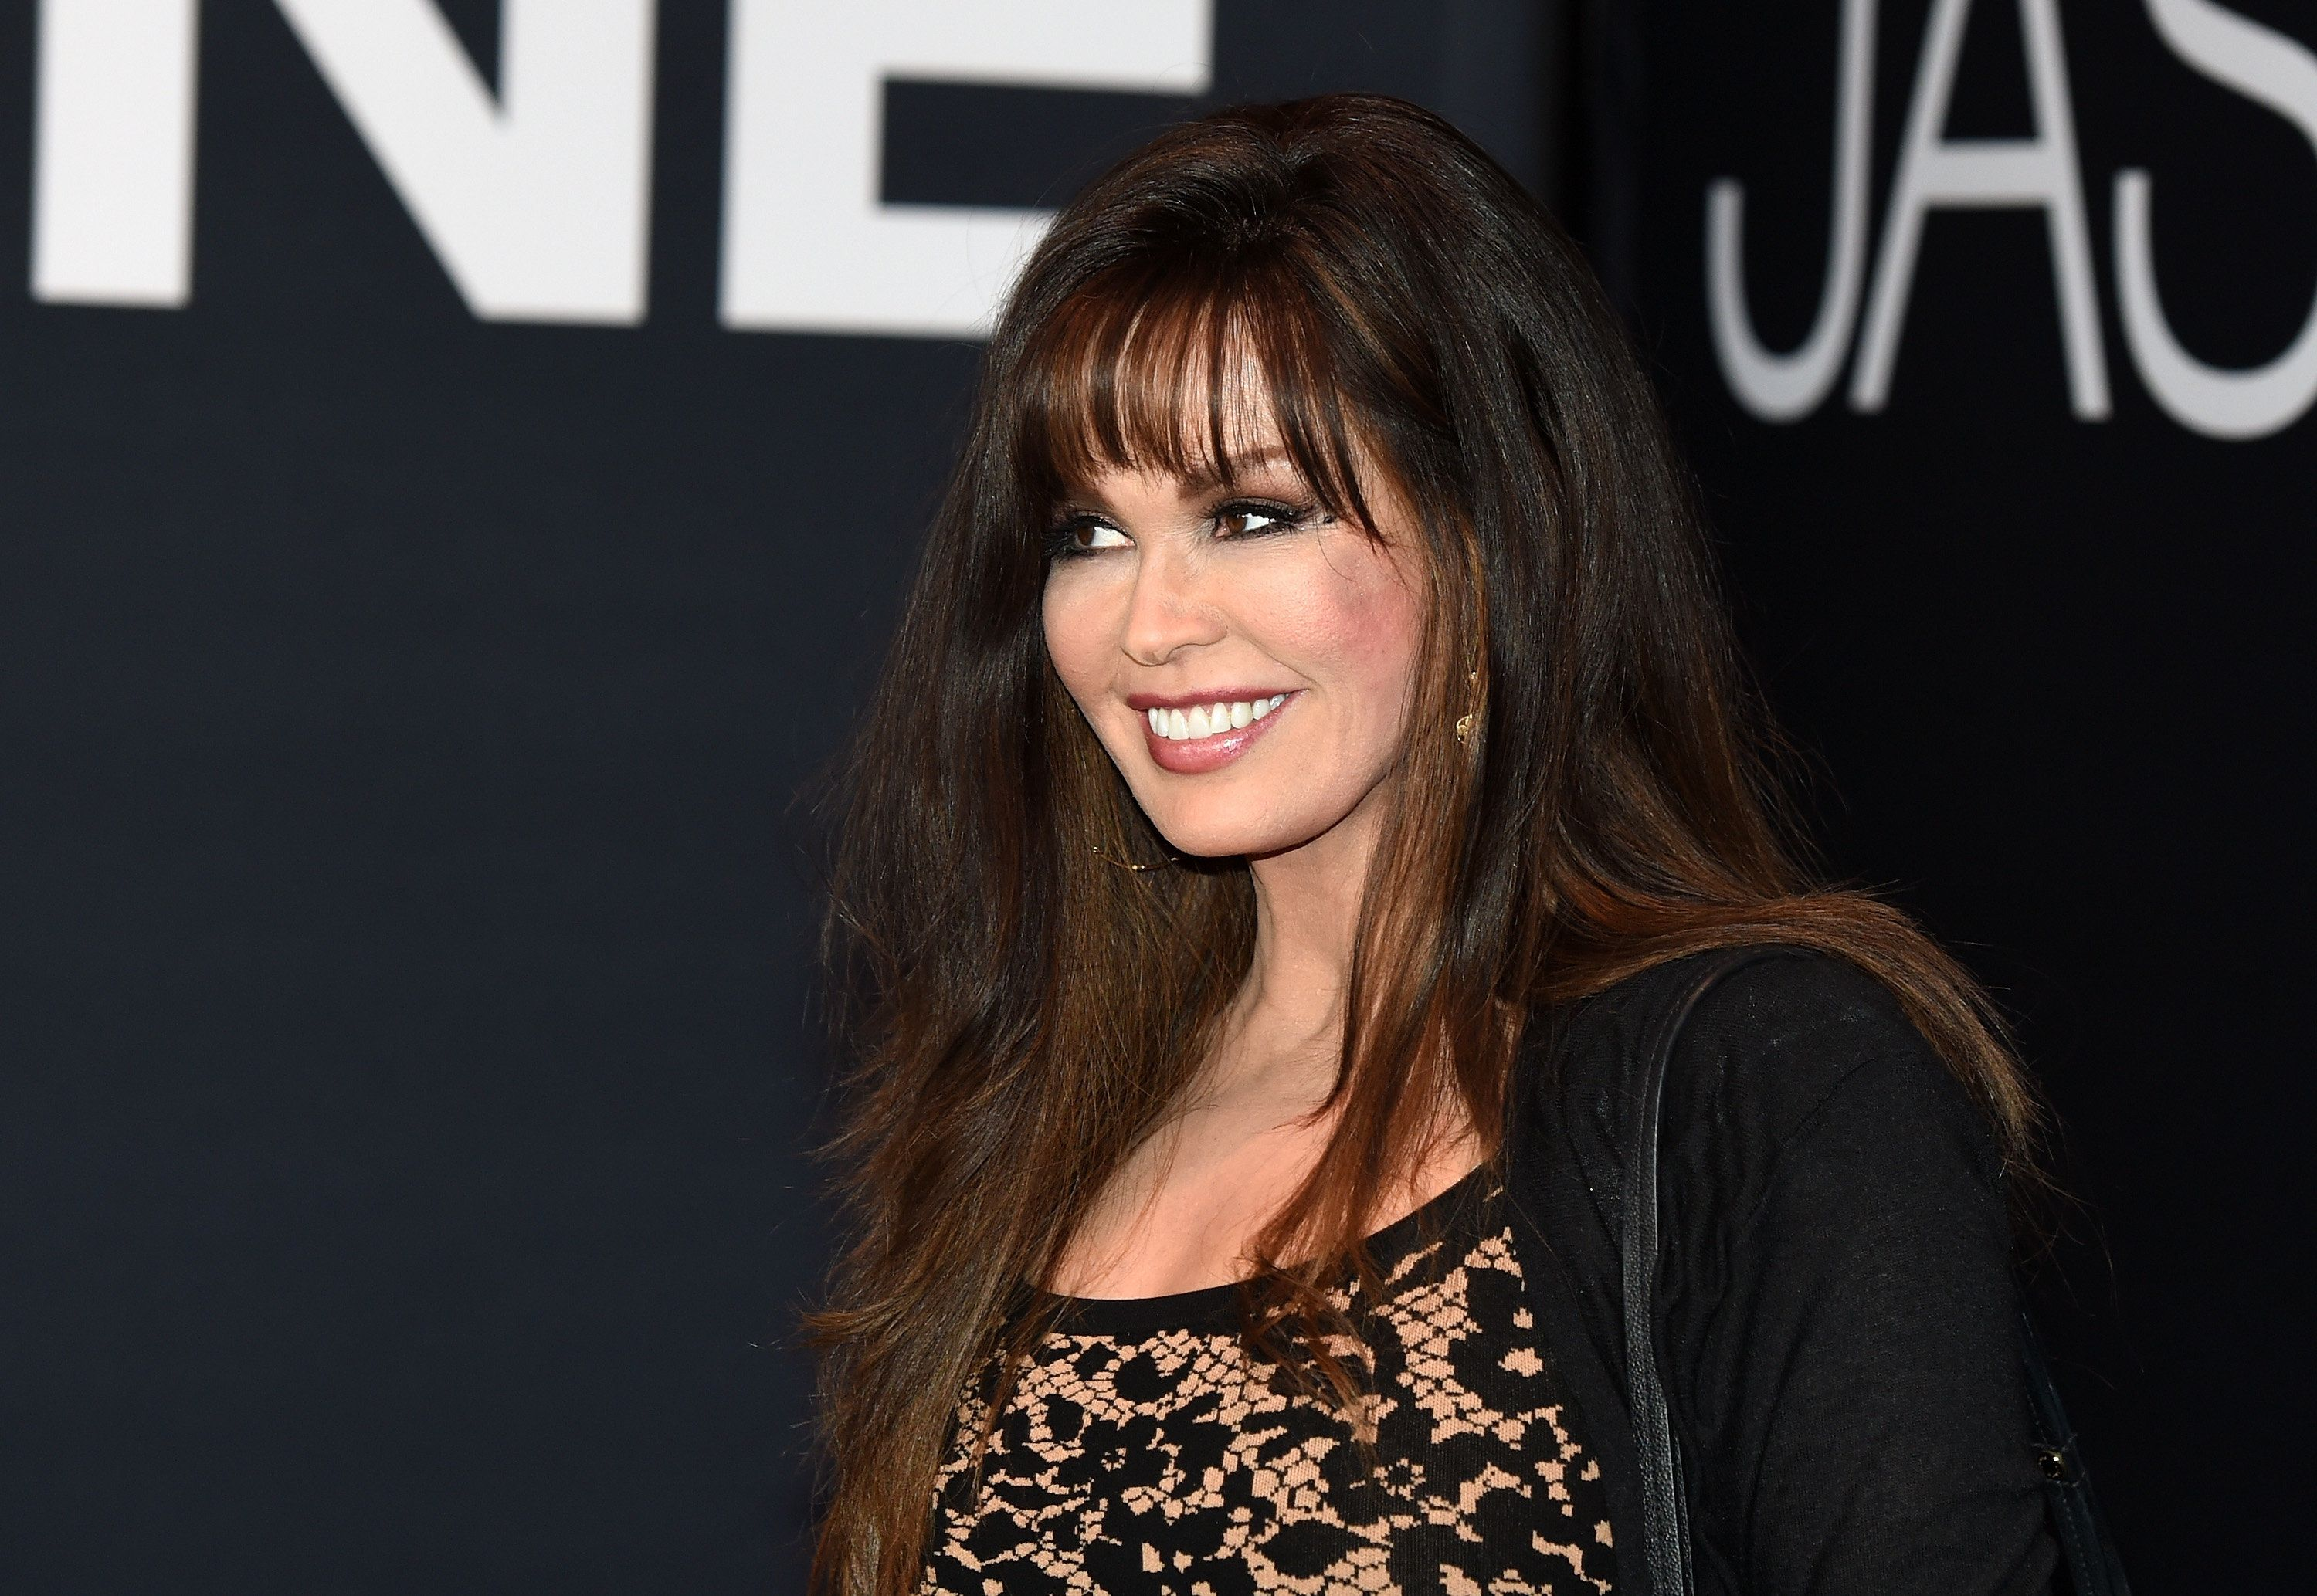 LAS VEGAS, NV - JULY 18:  Entertainer Marie Osmond attends the premiere of Universal Pictures' 'Jason Bourne' at The Colosseum at Caesars Palace on July 18, 2016 in Las Vegas, Nevada.  (Photo by Ethan Miller/Getty Images)